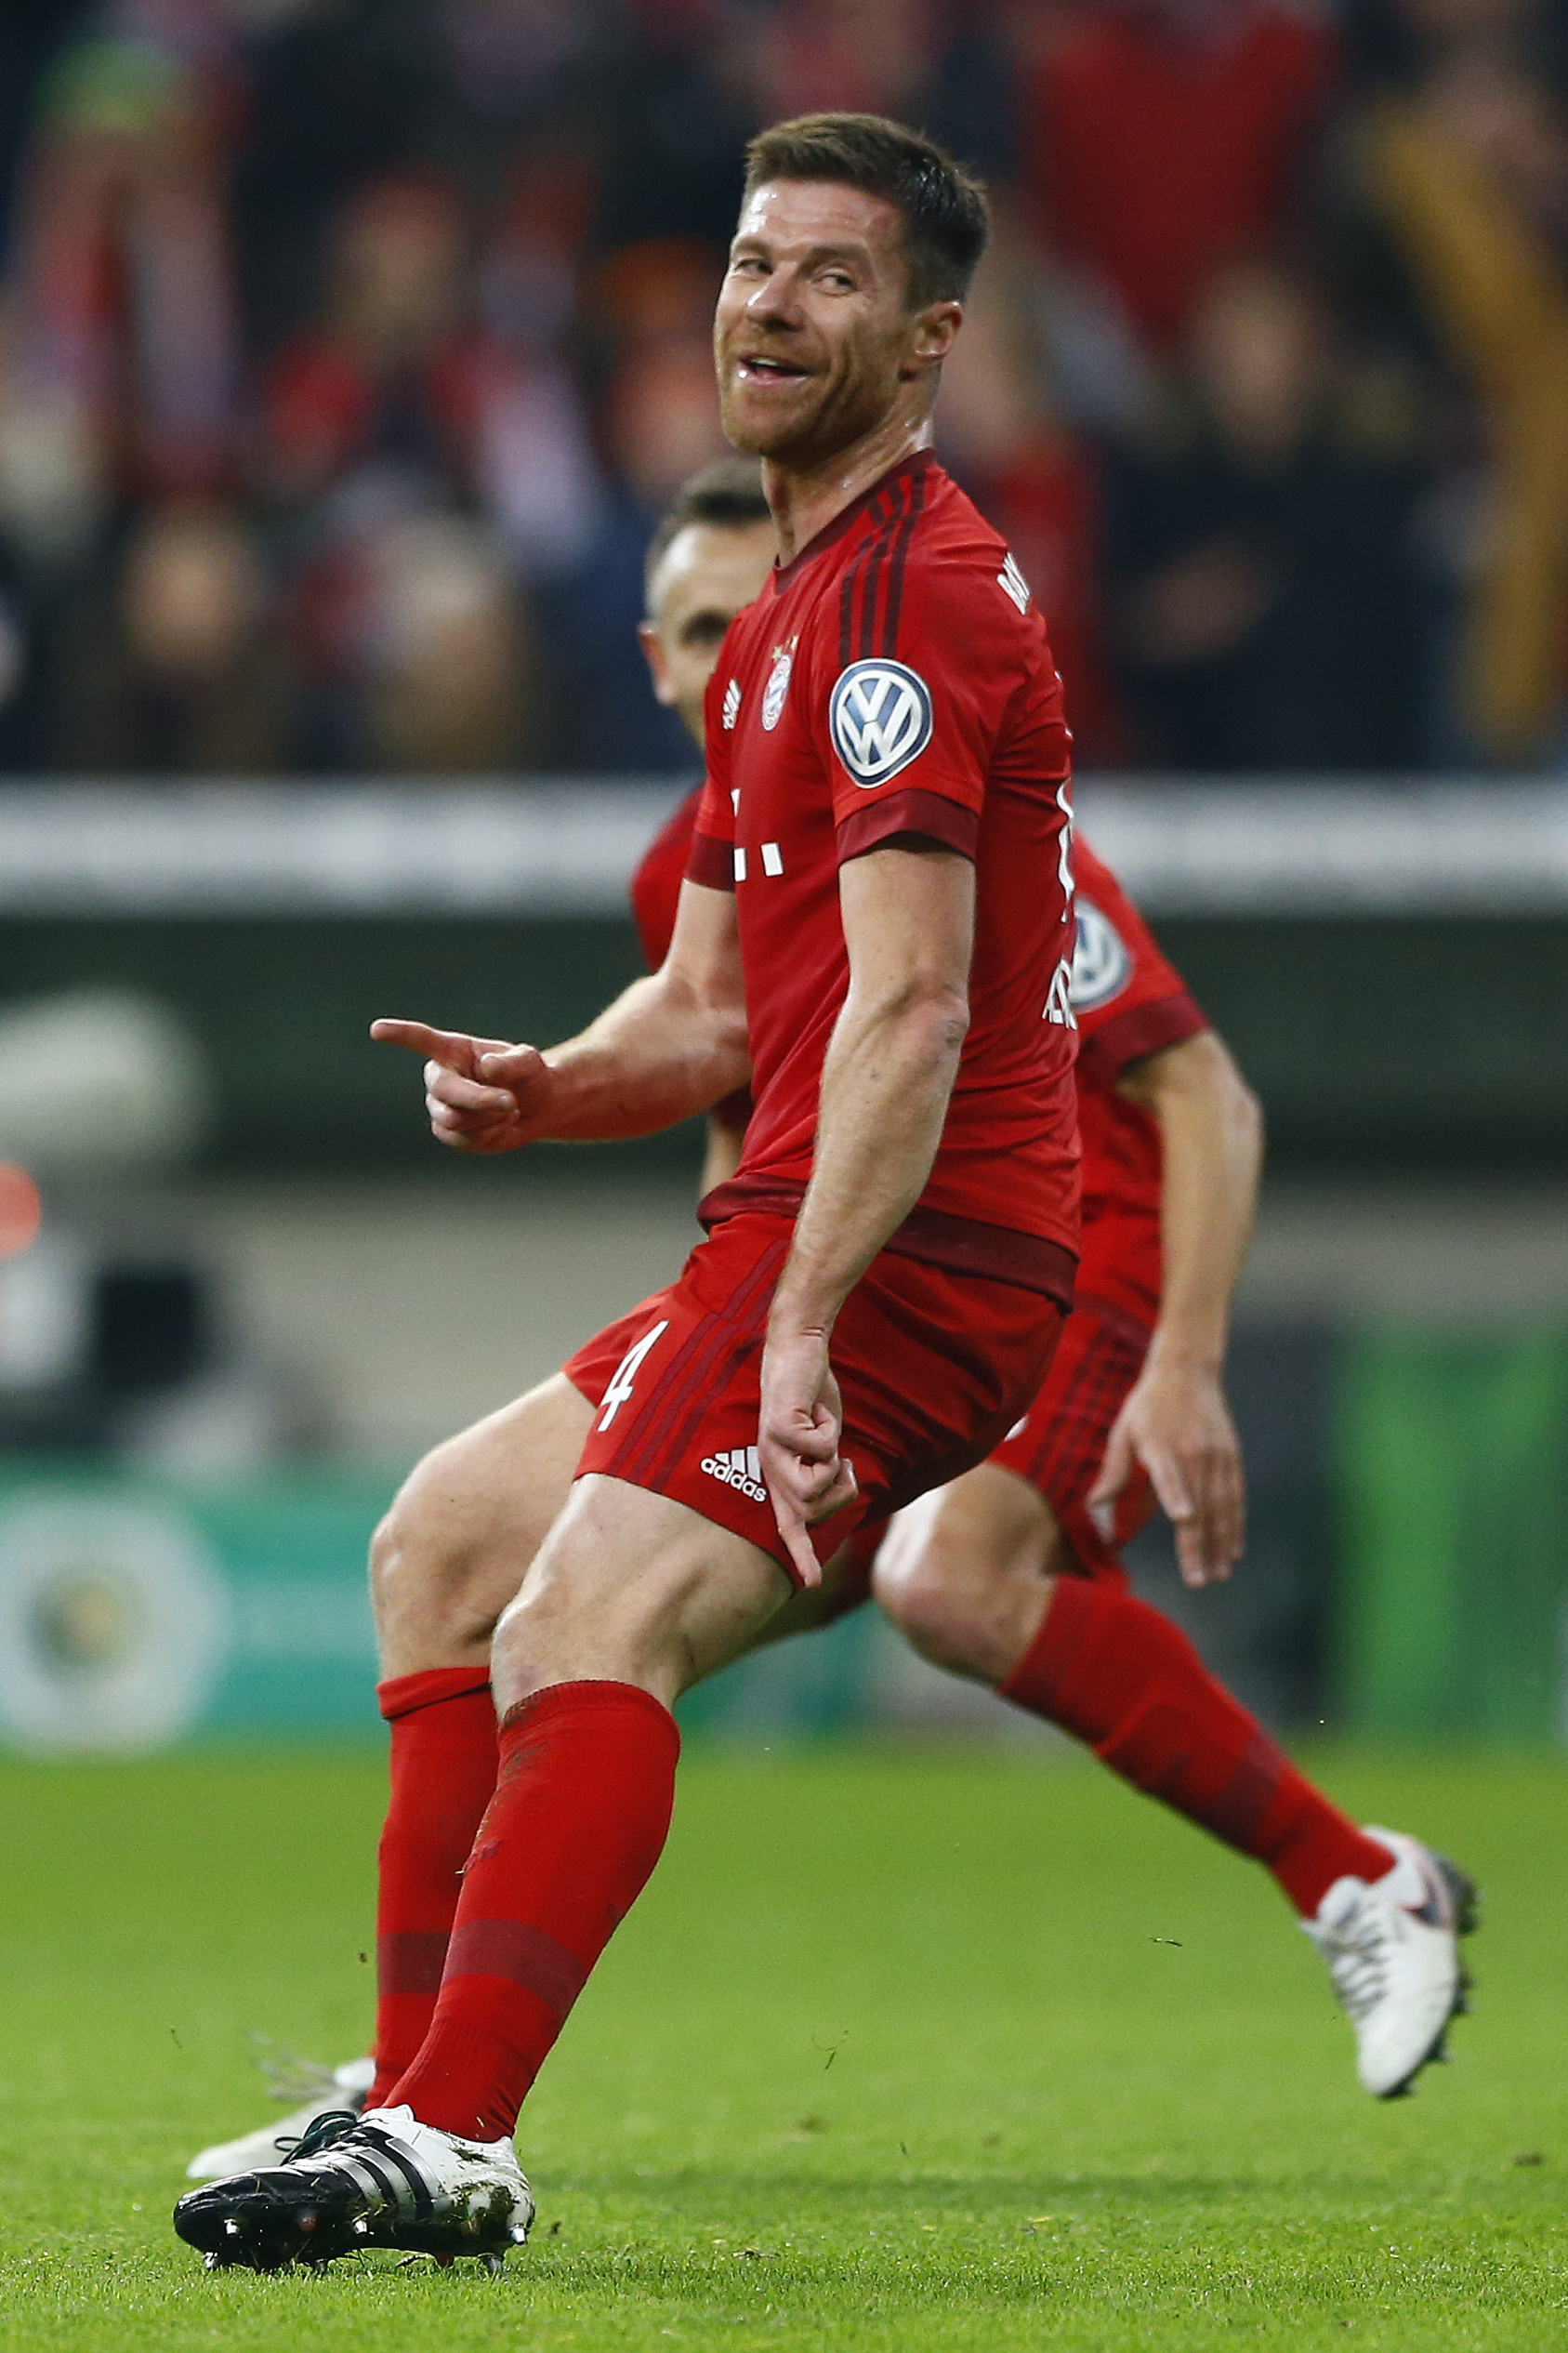 Bayern's Xabi Alonso celebrates after scoring his side's opening goal during the German soccer cup (DFB Pokal) match between FC Bayern Munich and SV Darmstadt 98 at the Allianz Arena on Tuesday, December 15, 2015. Photo: Reuters